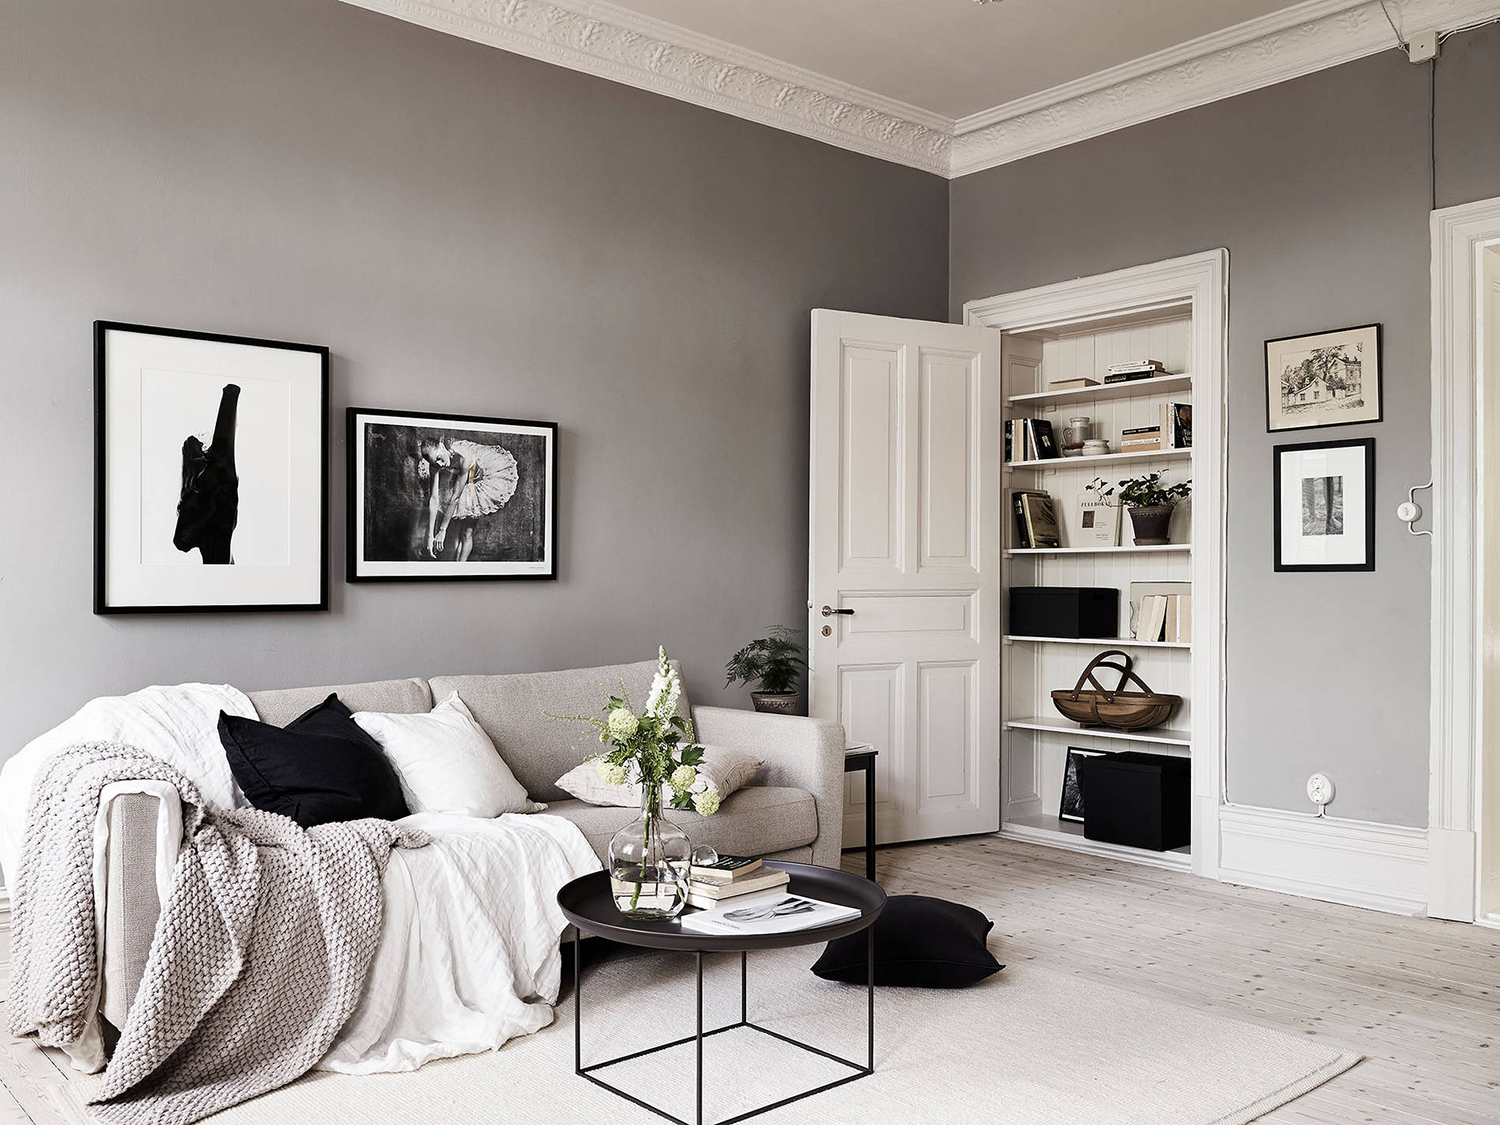 A swedish home with neutral colors rue for What are neutral colors